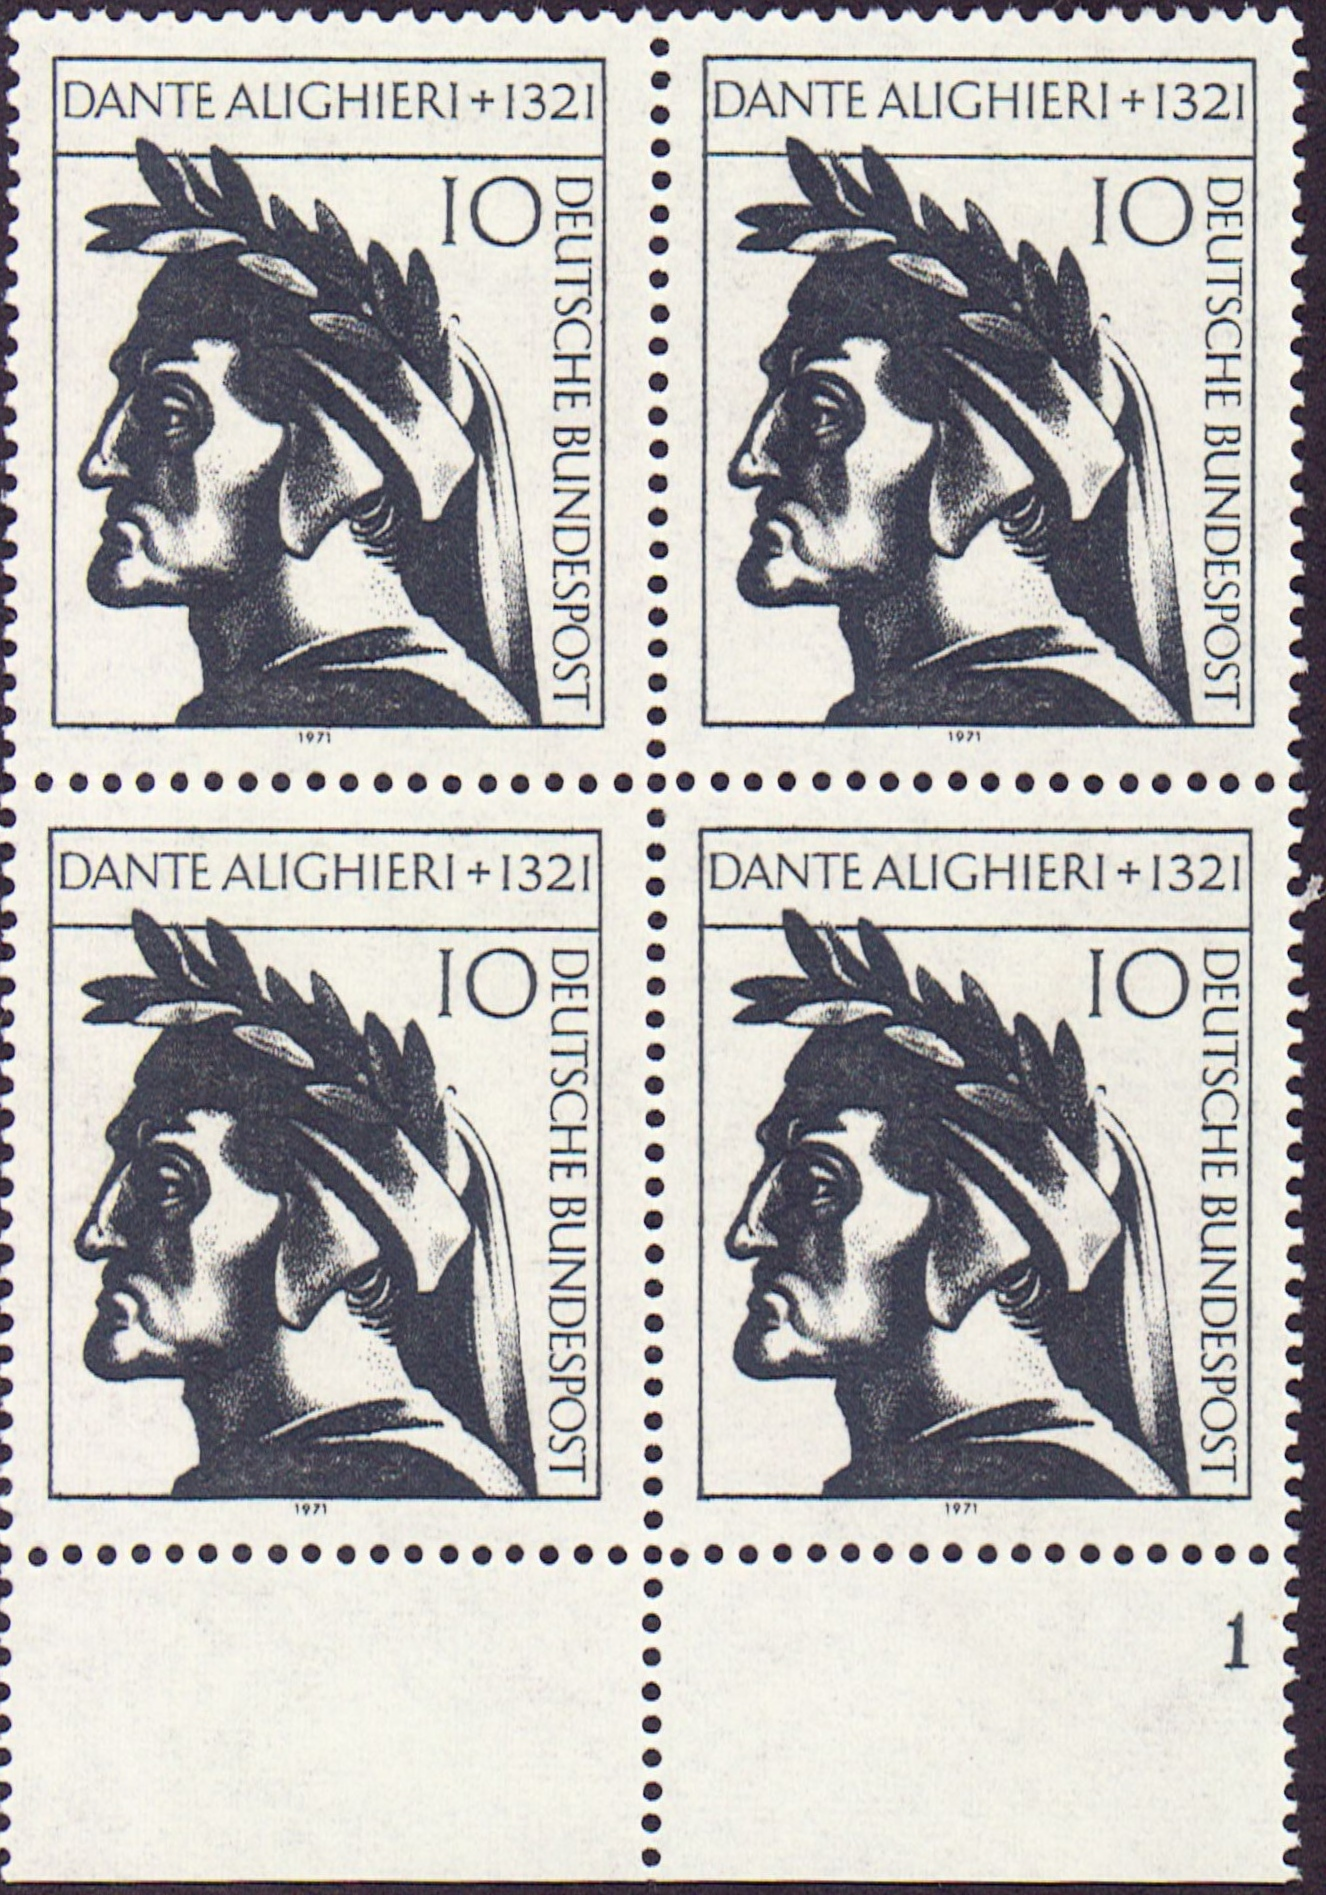 Germany Scott 1073, MNH, Block of 4, BL4, Dante Alighieri of 132